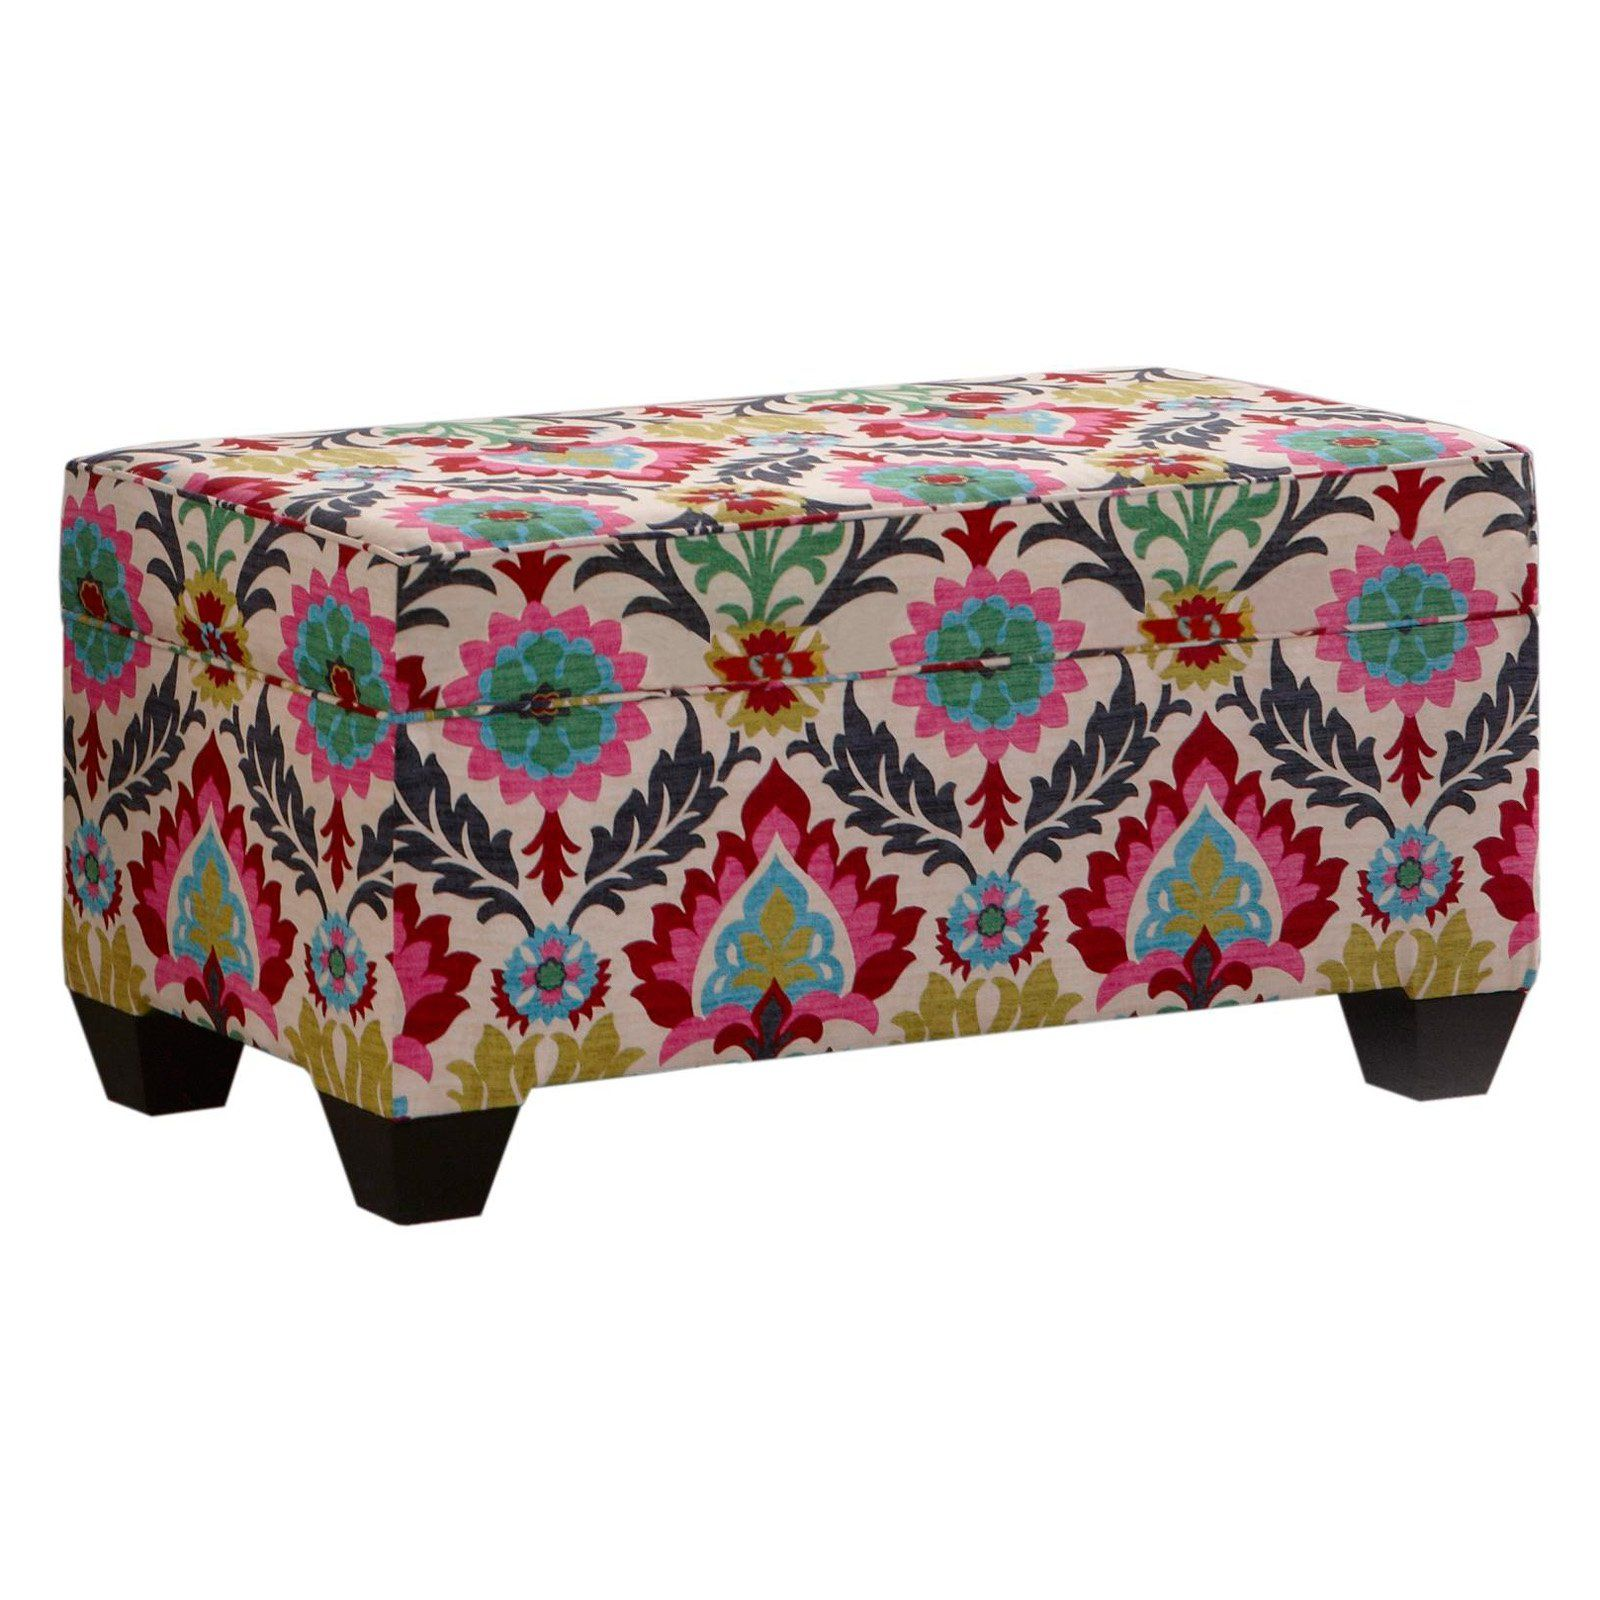 Attirant Skyline Storage Bench   Santa Maria Desert Flower   About Skyline Furniture  Manufacturing Inc.Skyline